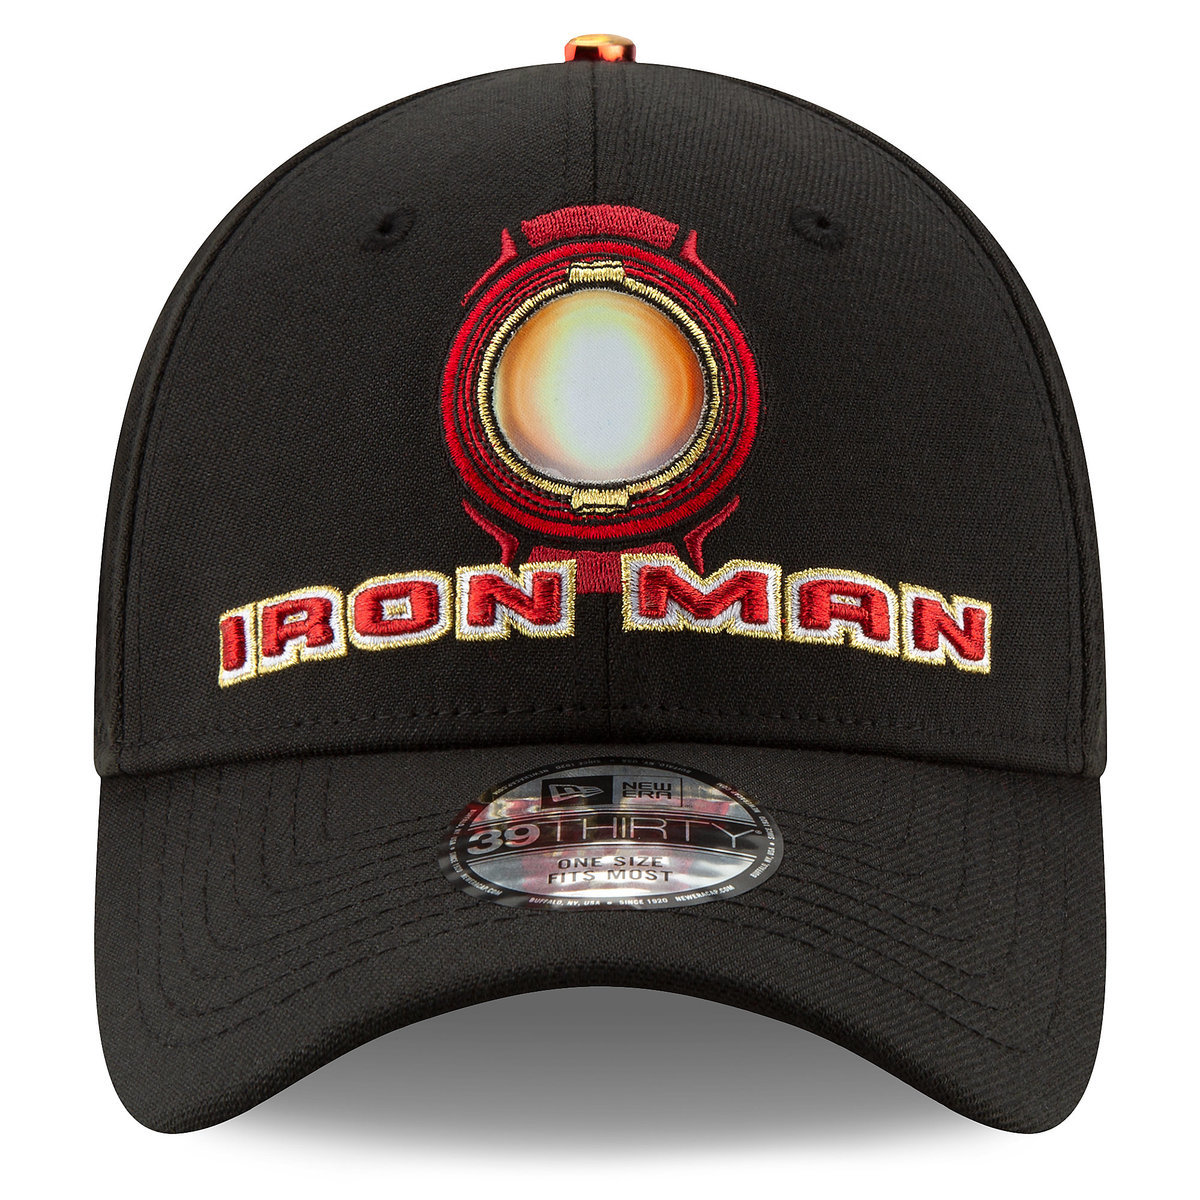 f1975c6d1851c Limited Edition Collector Boxed Iron Man Cap by New Era - Marvel Studios  Crew Cap Collection